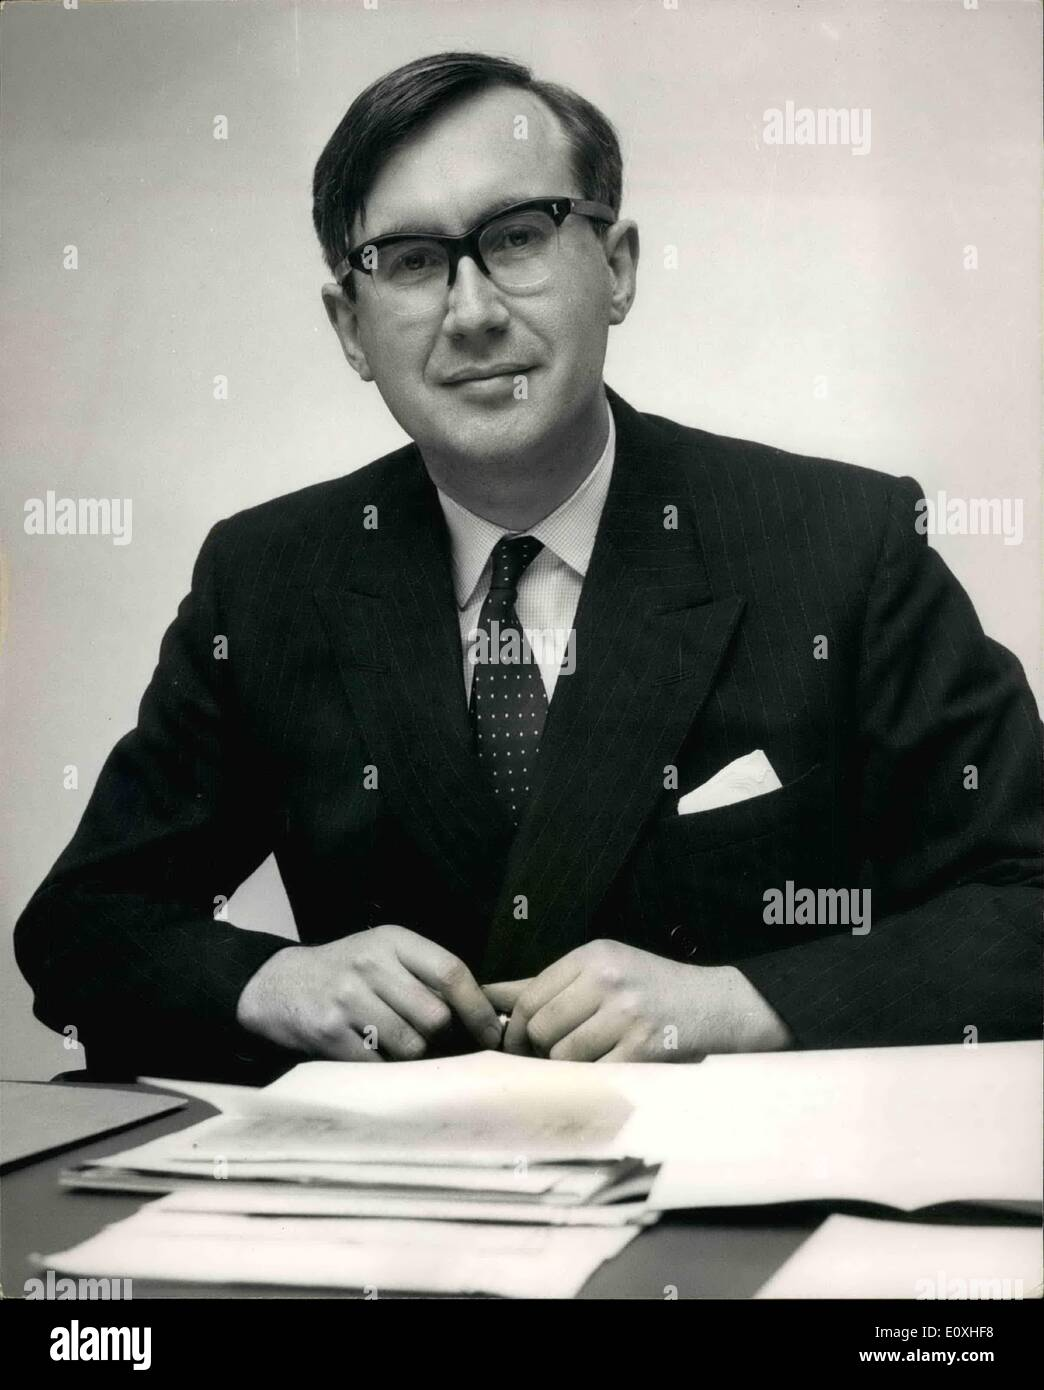 Jan. 01, 1967 - NEW EDITOR OF THE TIMES. Mr. William Rees-Mogg, 38 year old deputy editor of the Sunday Times, was yesterday appointed editor of The Times. The new appointment was announced yesterday by Times Newspapers Ltd., who now own The Times and The Sunday Times. Keystone Photo Shows:- Mr. William Rees-Mogg pictured today in the editor's office at The Times today. - Stock Image